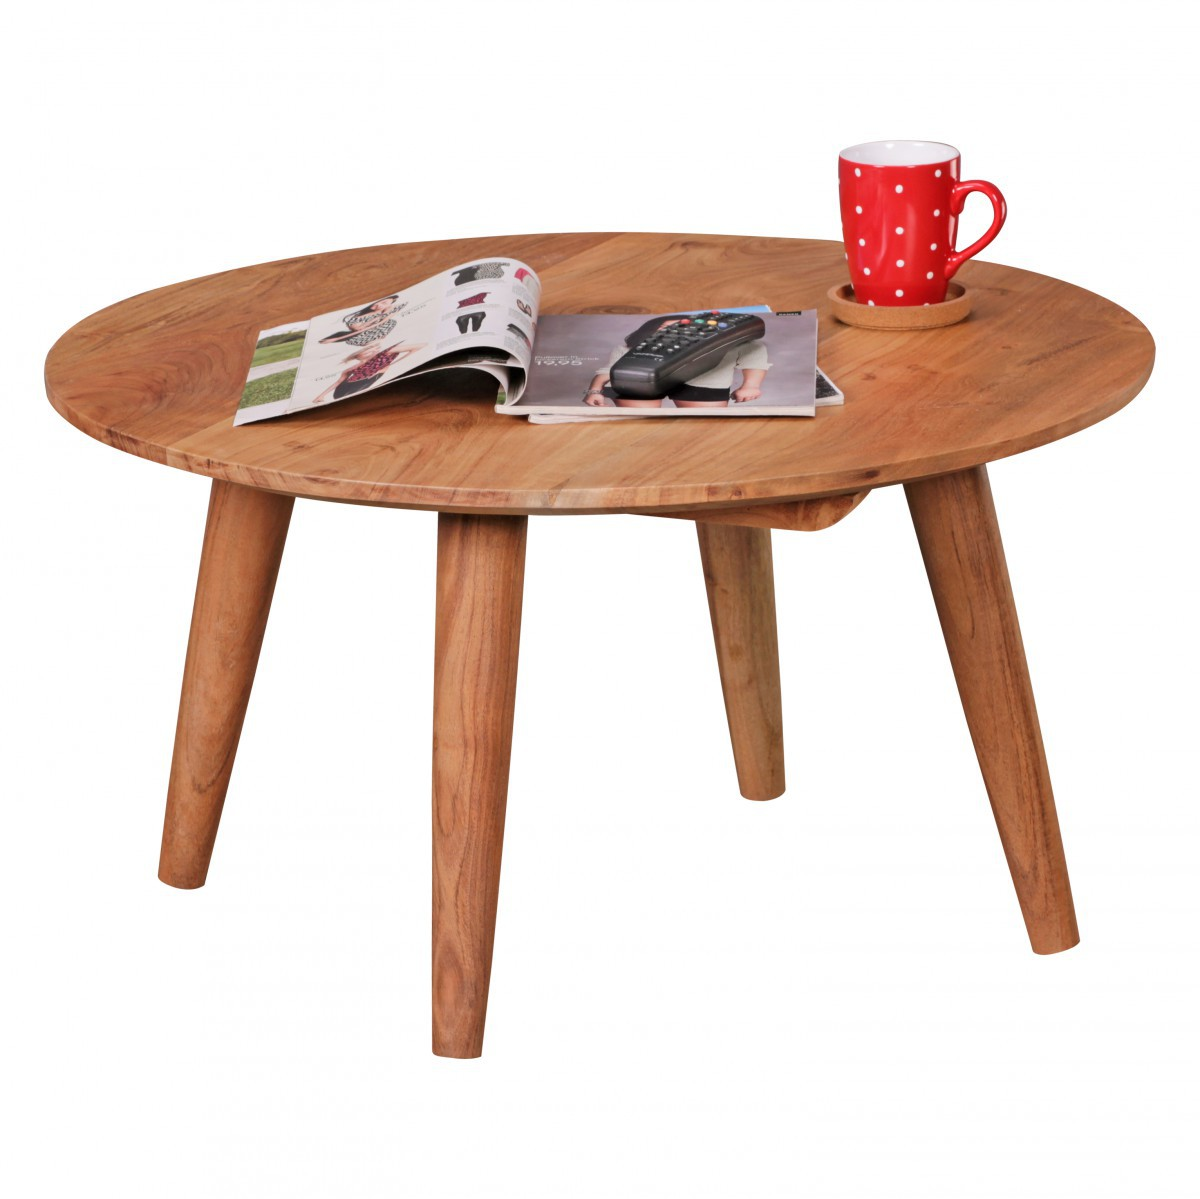 Finebuy table basse en bois massif acacia table basse ronde 75 x 40 cm ferme - Table basse bois massif exotique ...